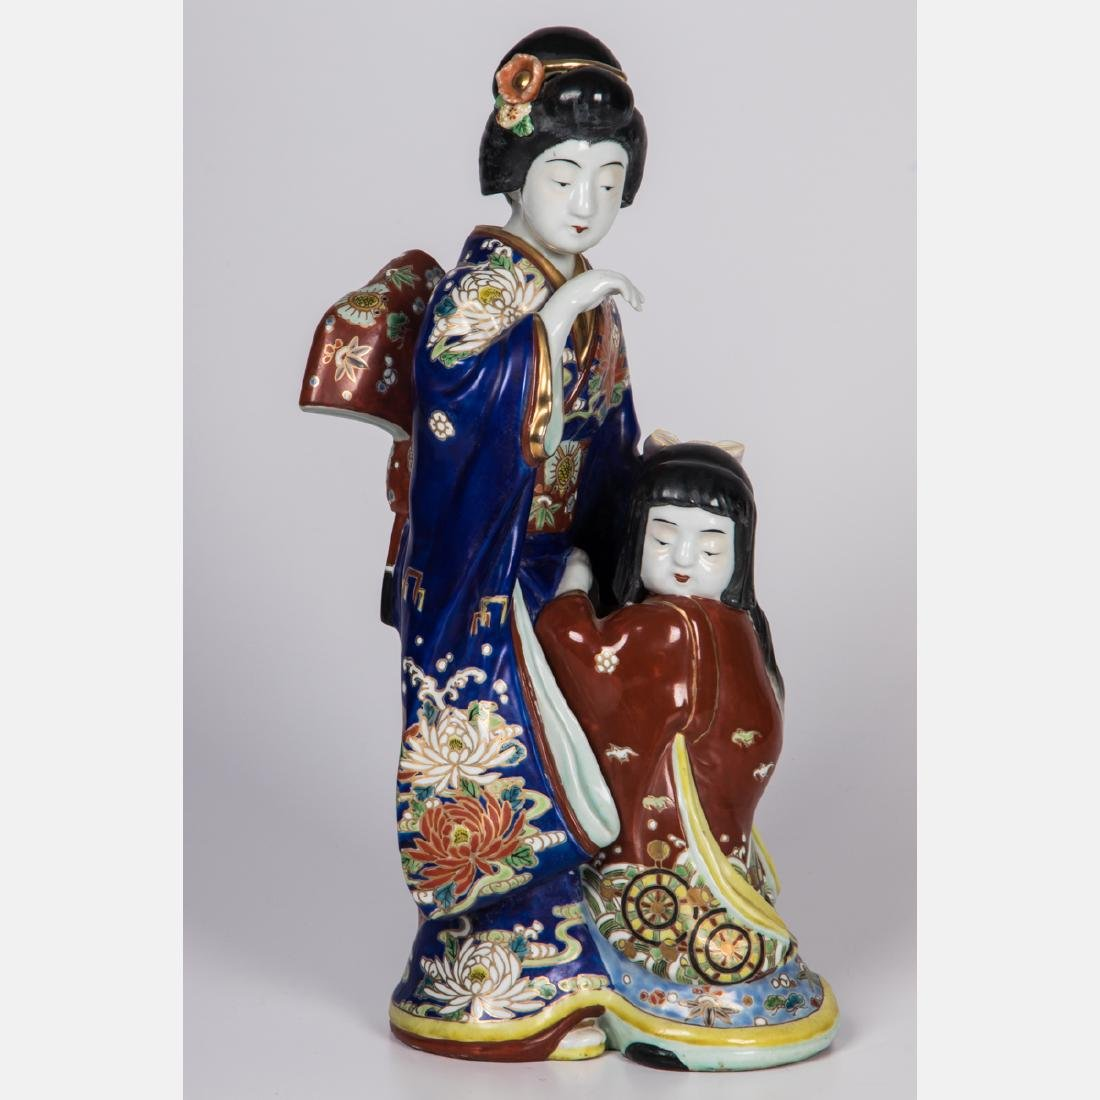 A Japanese Porcelain Figural Group, 20th Century.